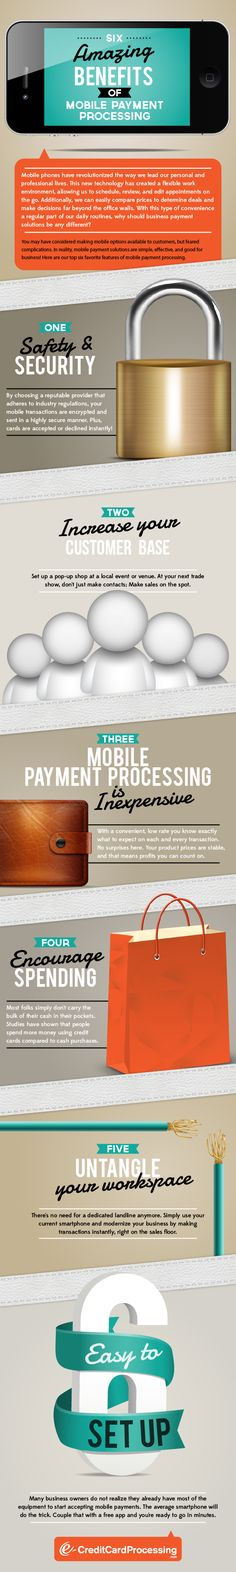 Merchant account providers are a reliable and secure way for businesses to offer convenient payment solutions to customers. These days, mobile merchants Marketing Mobile, Digital Marketing, Mobiles, Accounting And Finance, Business Marketing, Business Infographics, Mobile Technology, App Design, Design Art